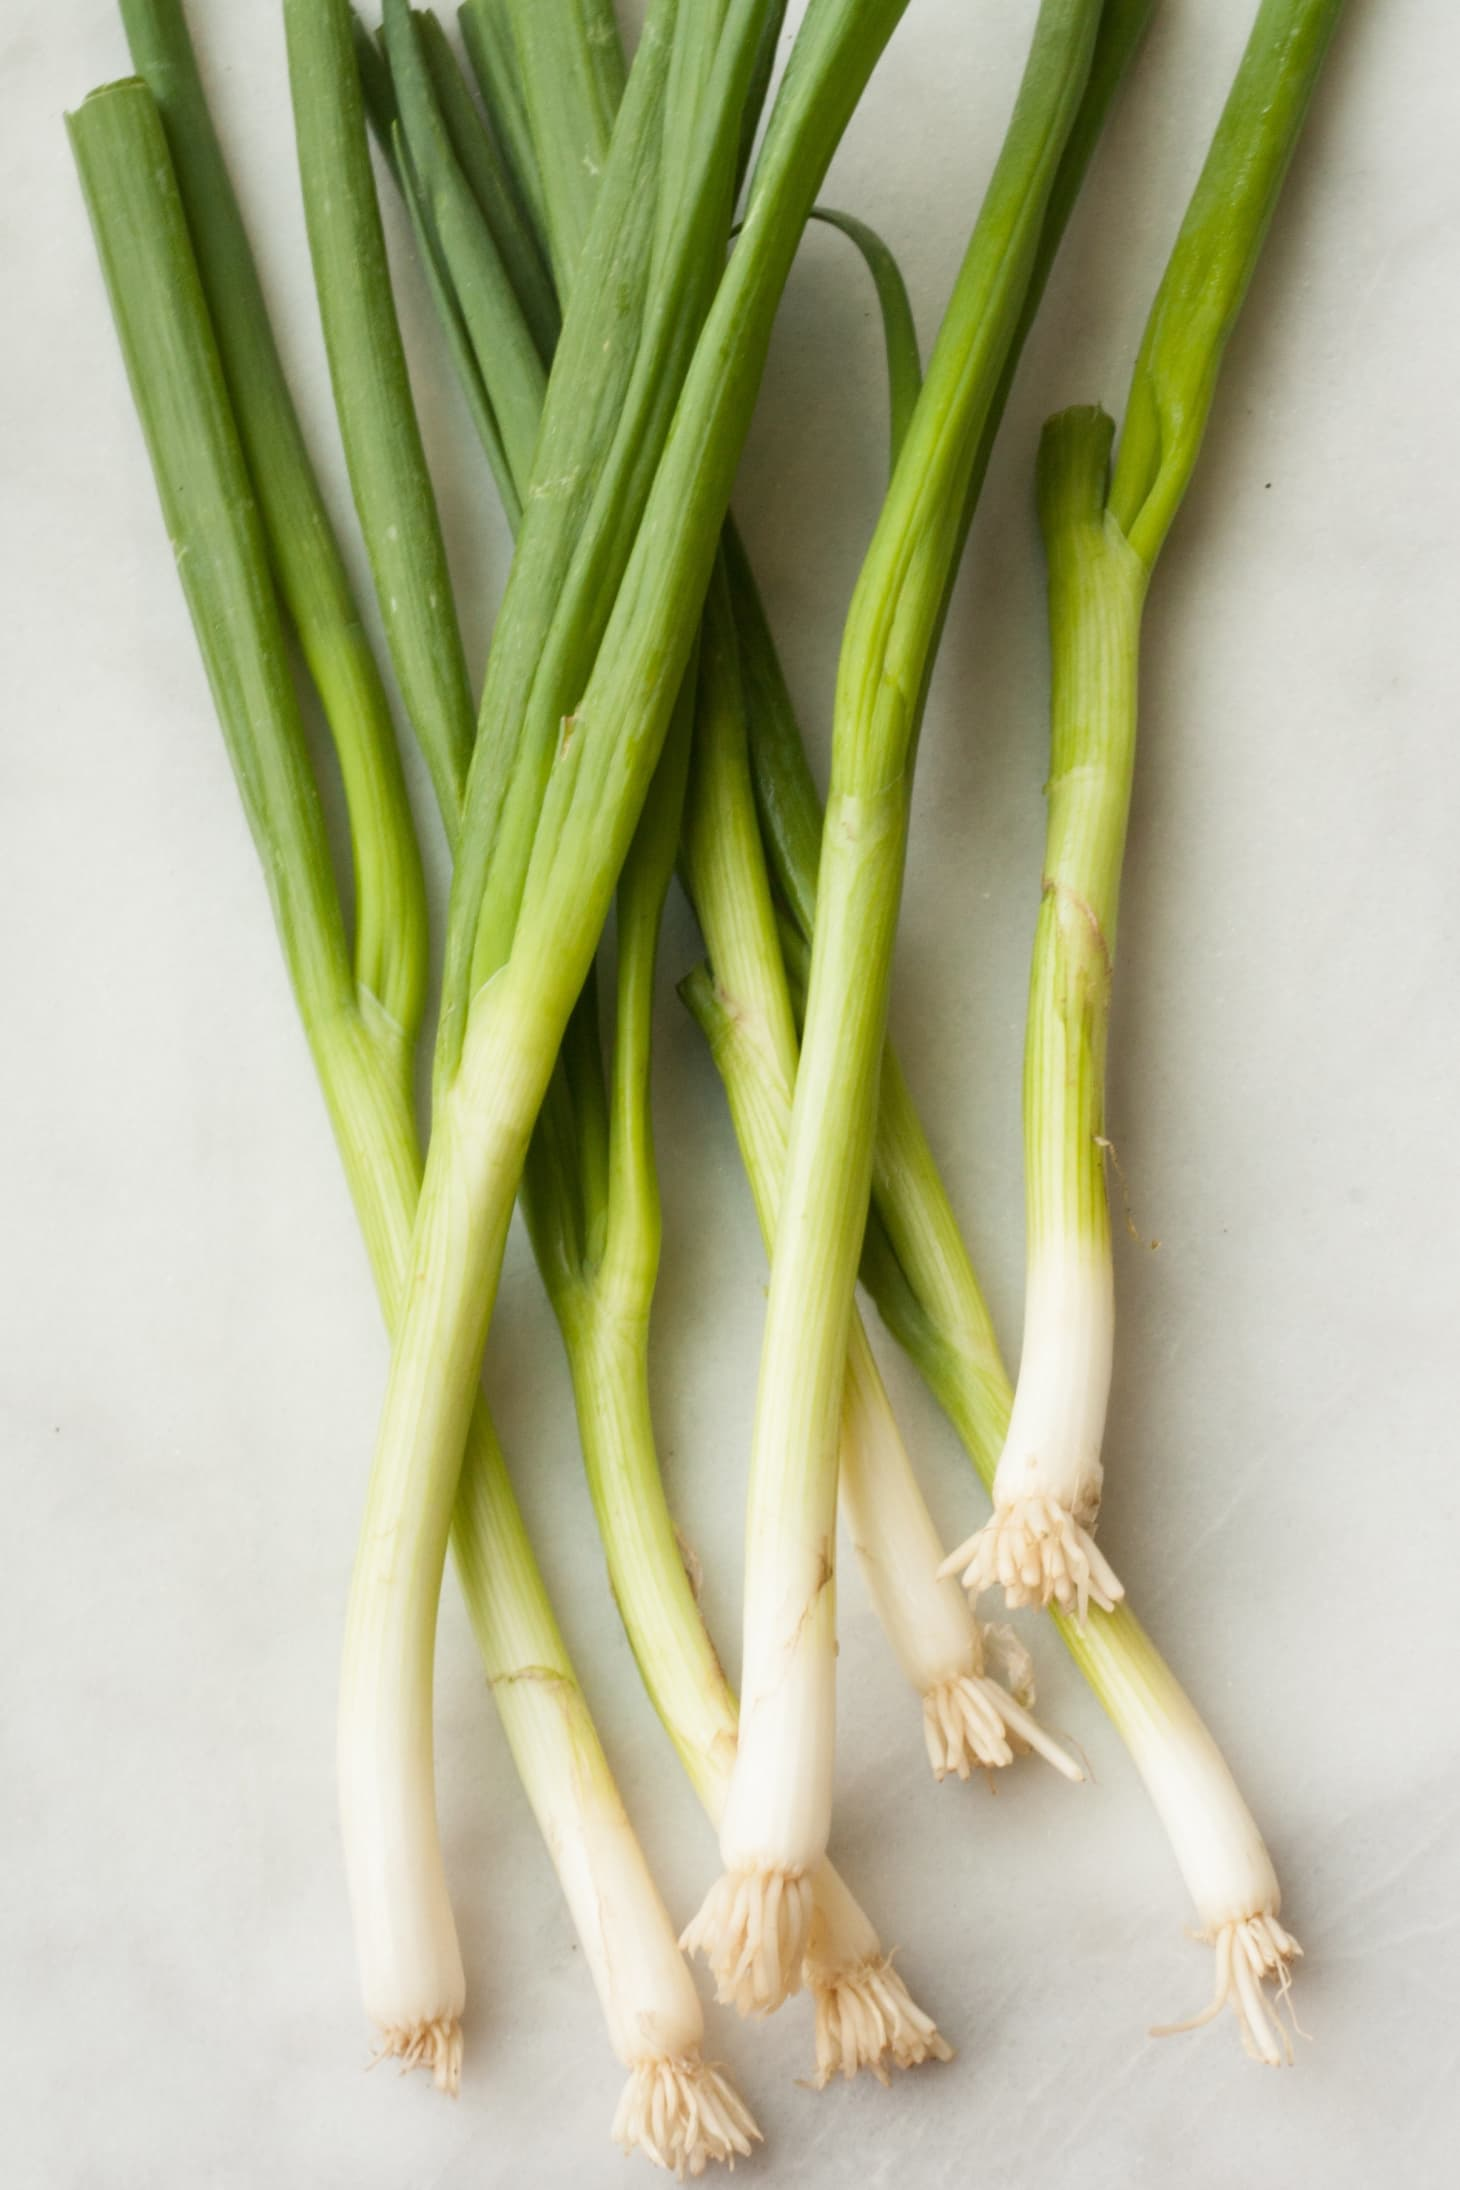 Difference Between Scallions and Green & Spring Onions | Kitchn